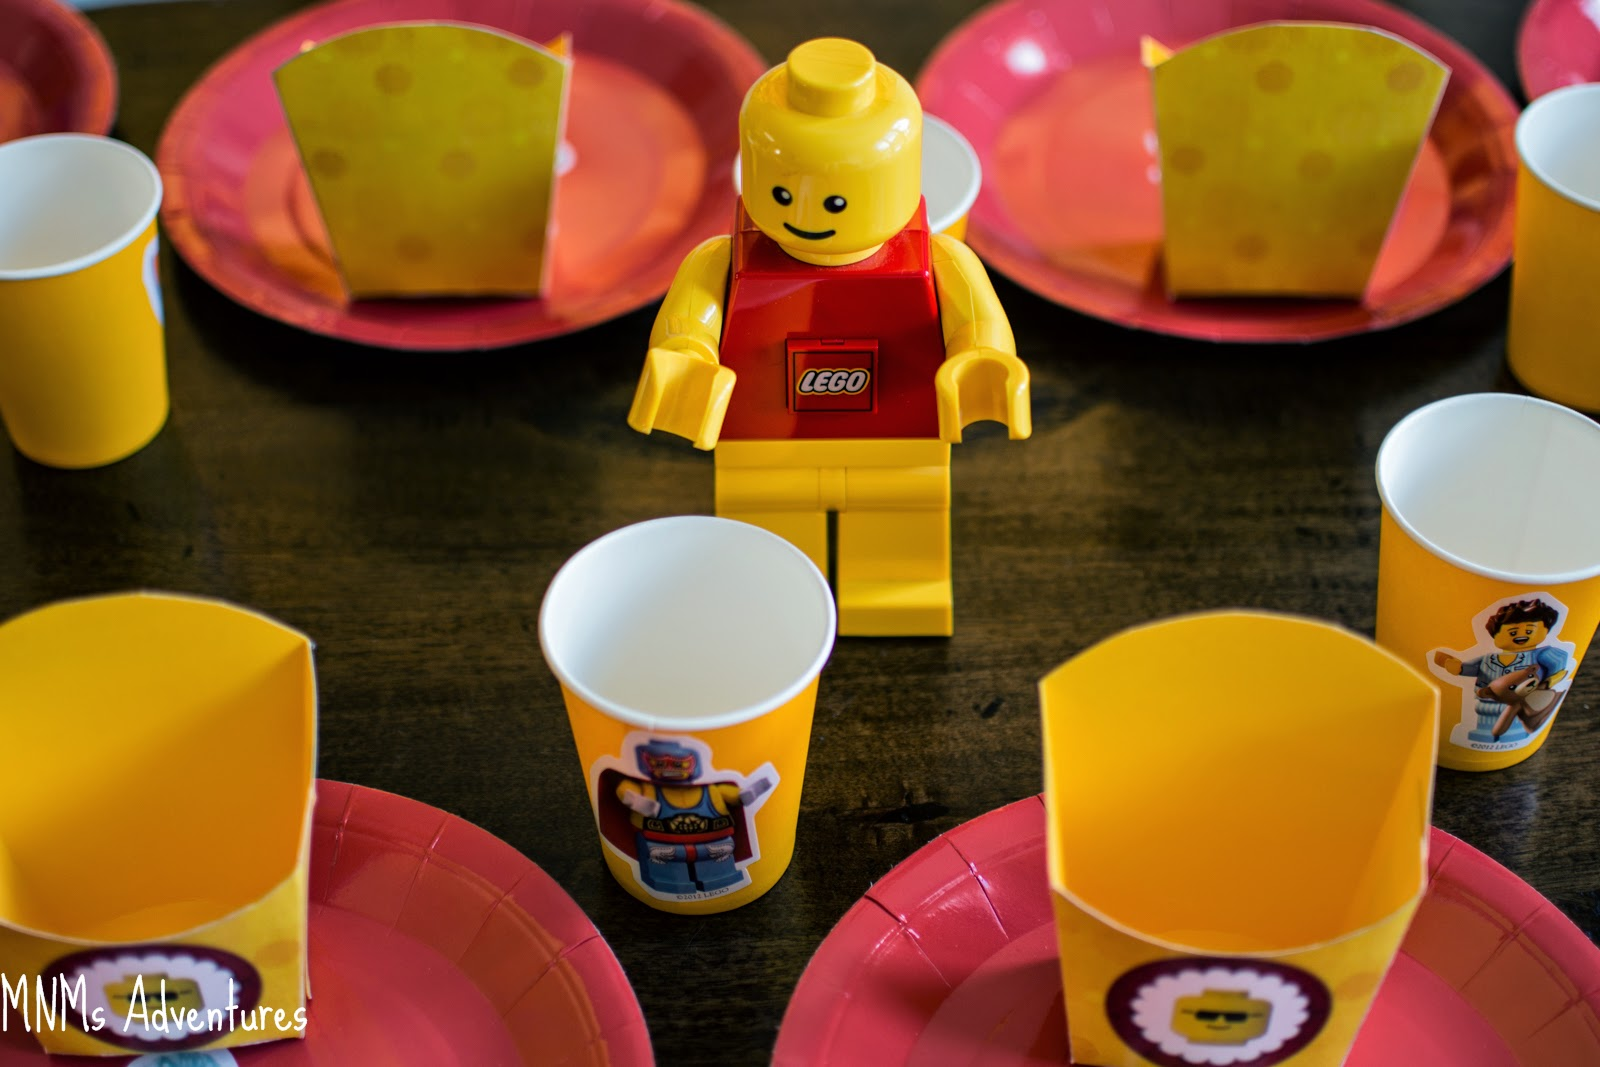 LEGO movie theme party table decorations